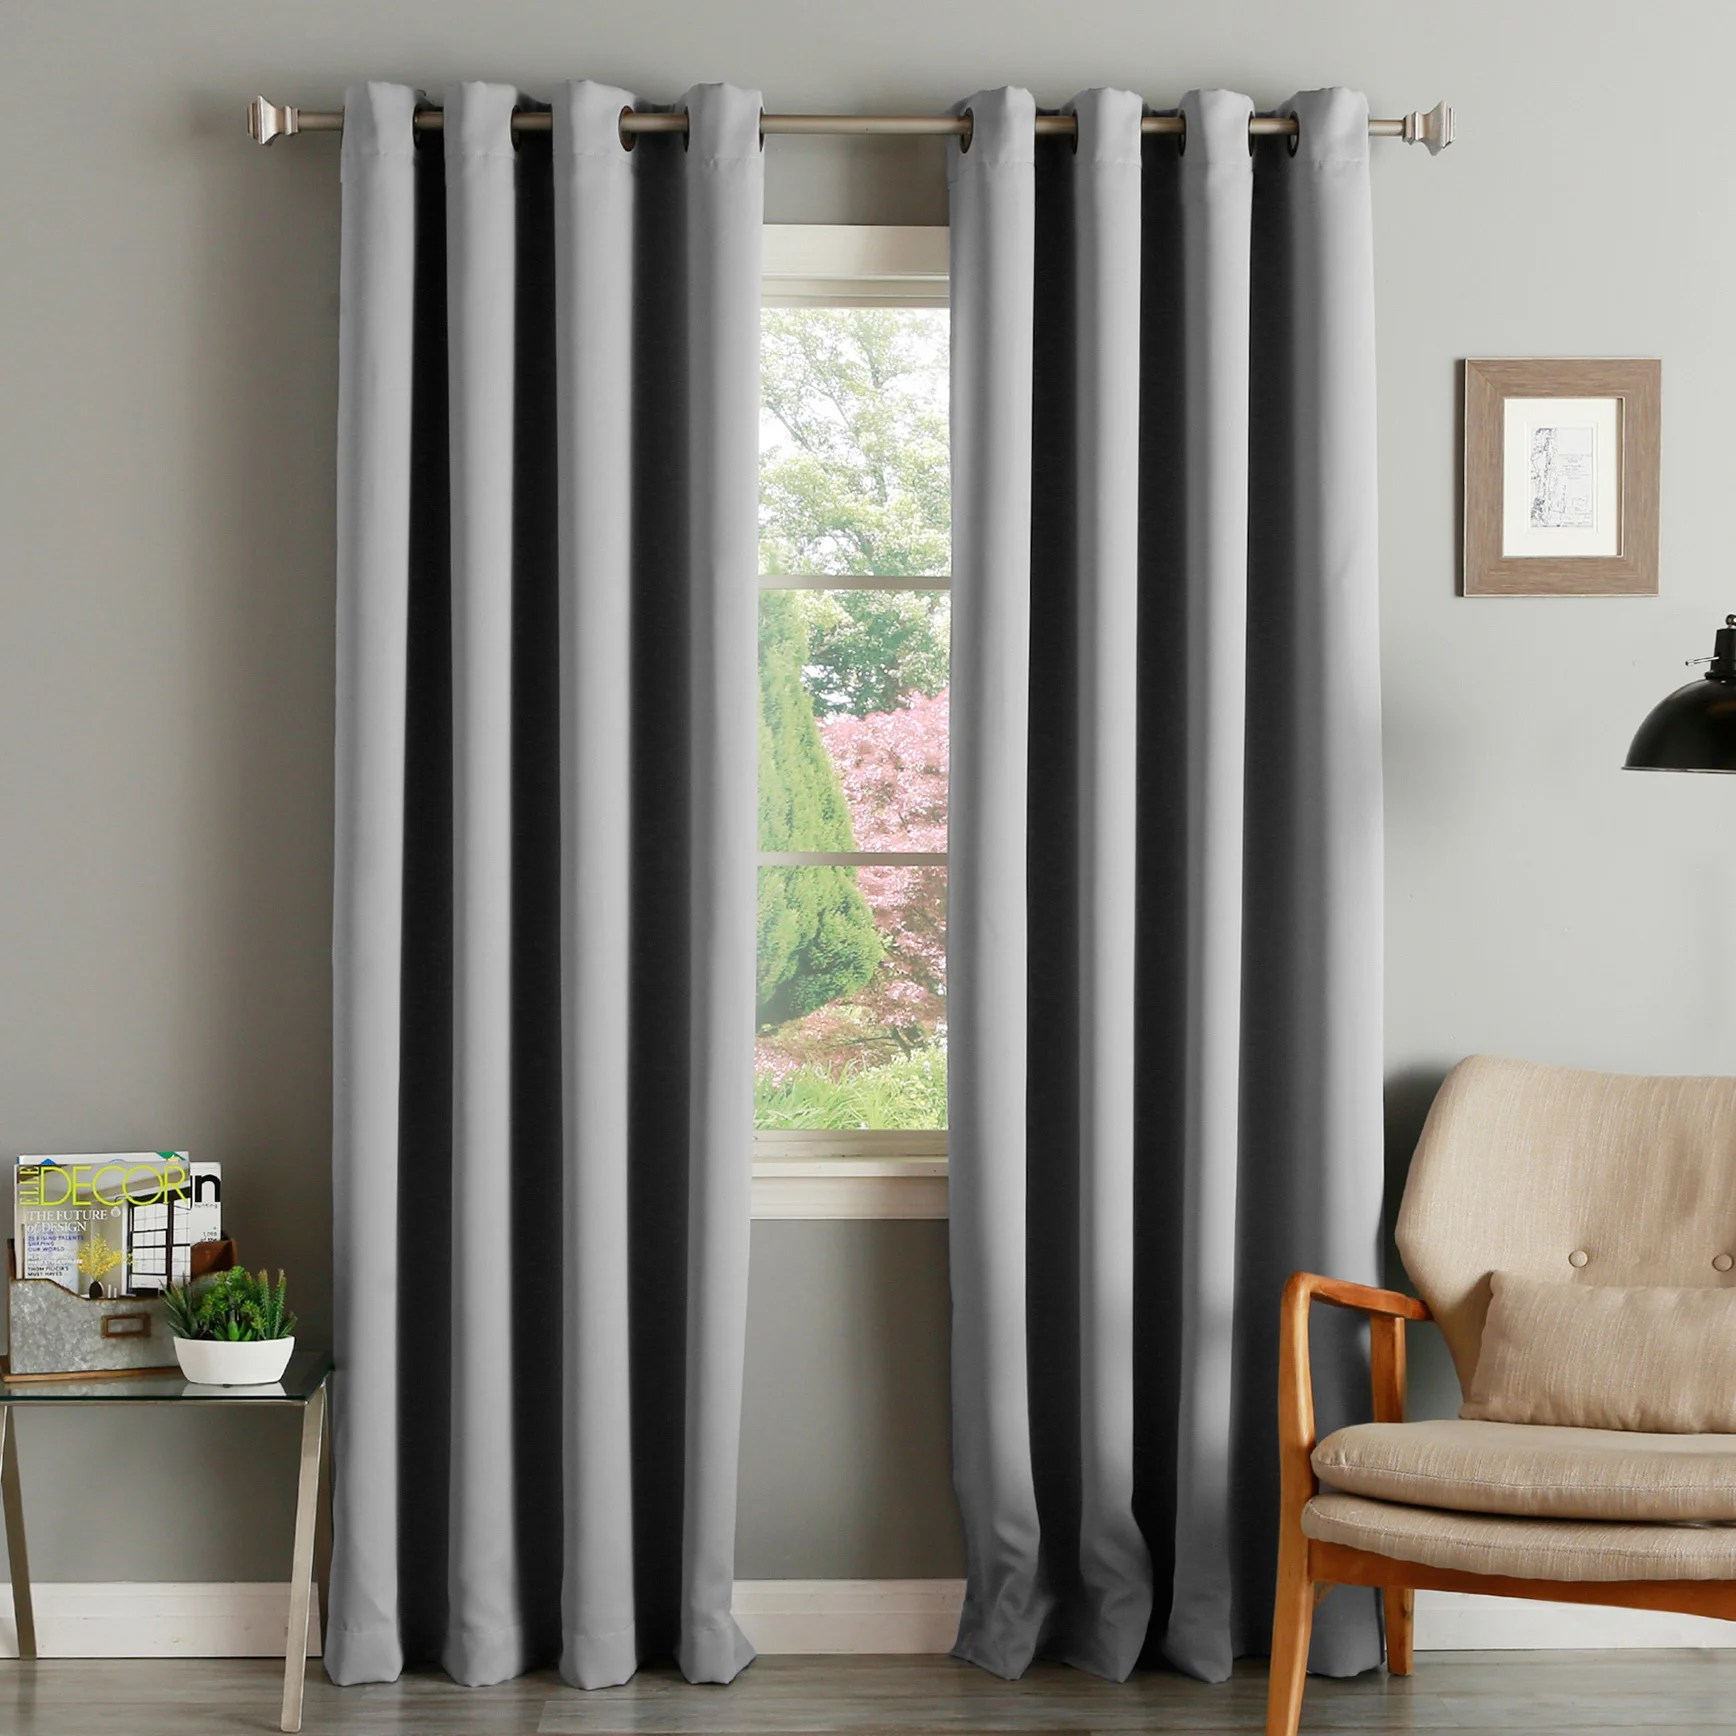 Curtains For Long Windows Buy Curtains Drapes Online At Overstock Our Best Window